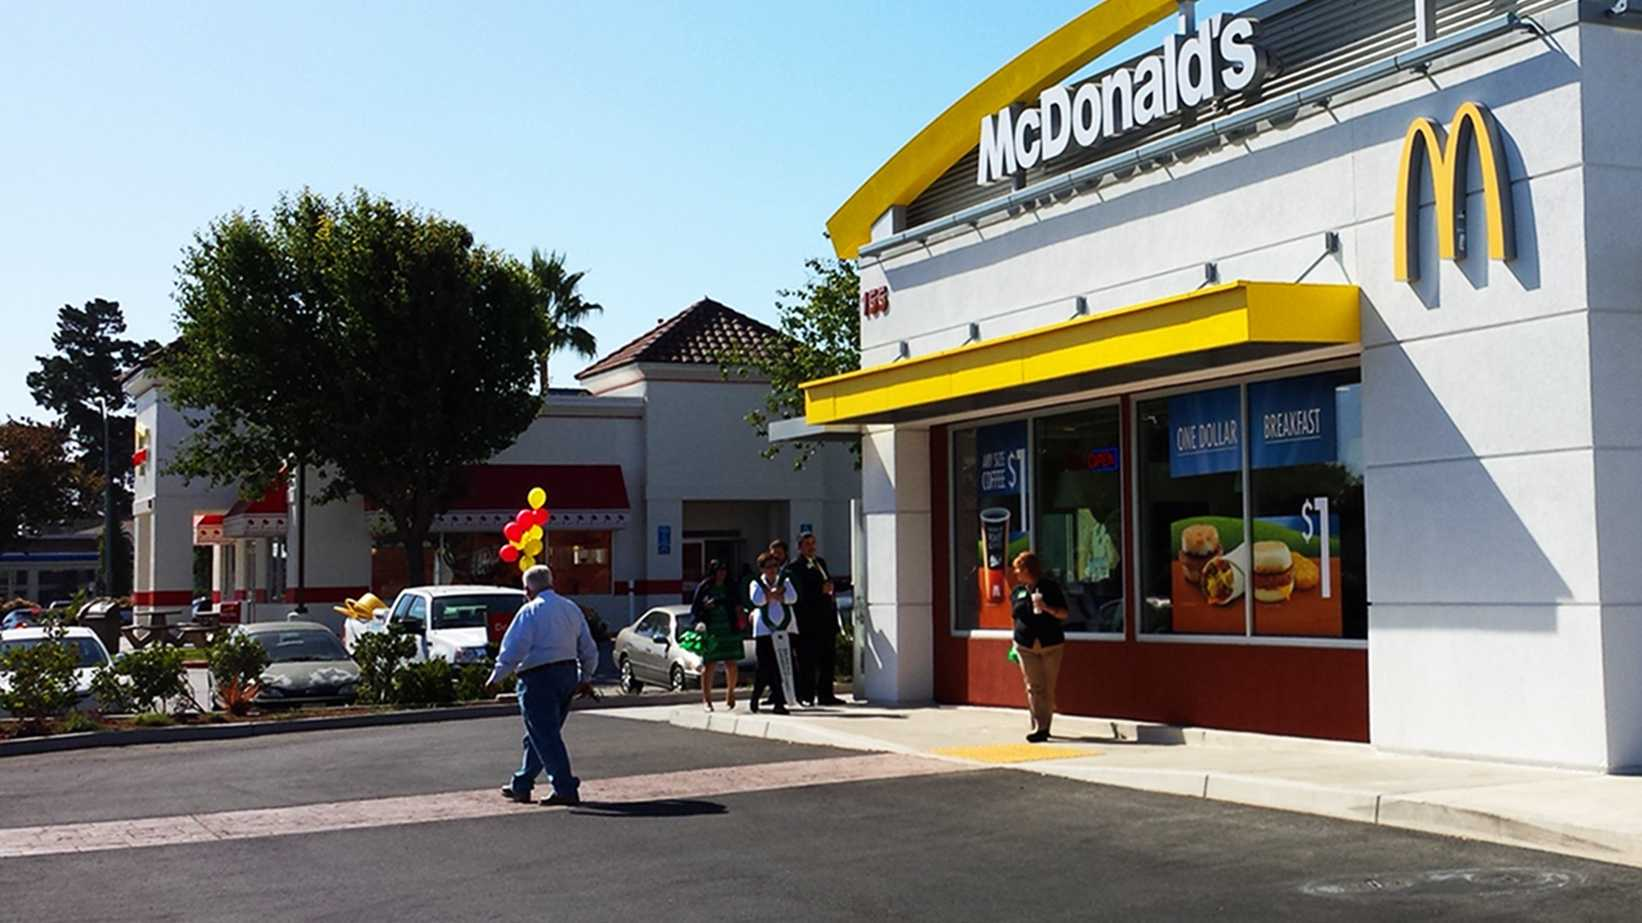 A new McDonald's opened right next door to In-N-Out in Salinas. (Oct. 8, 2013)